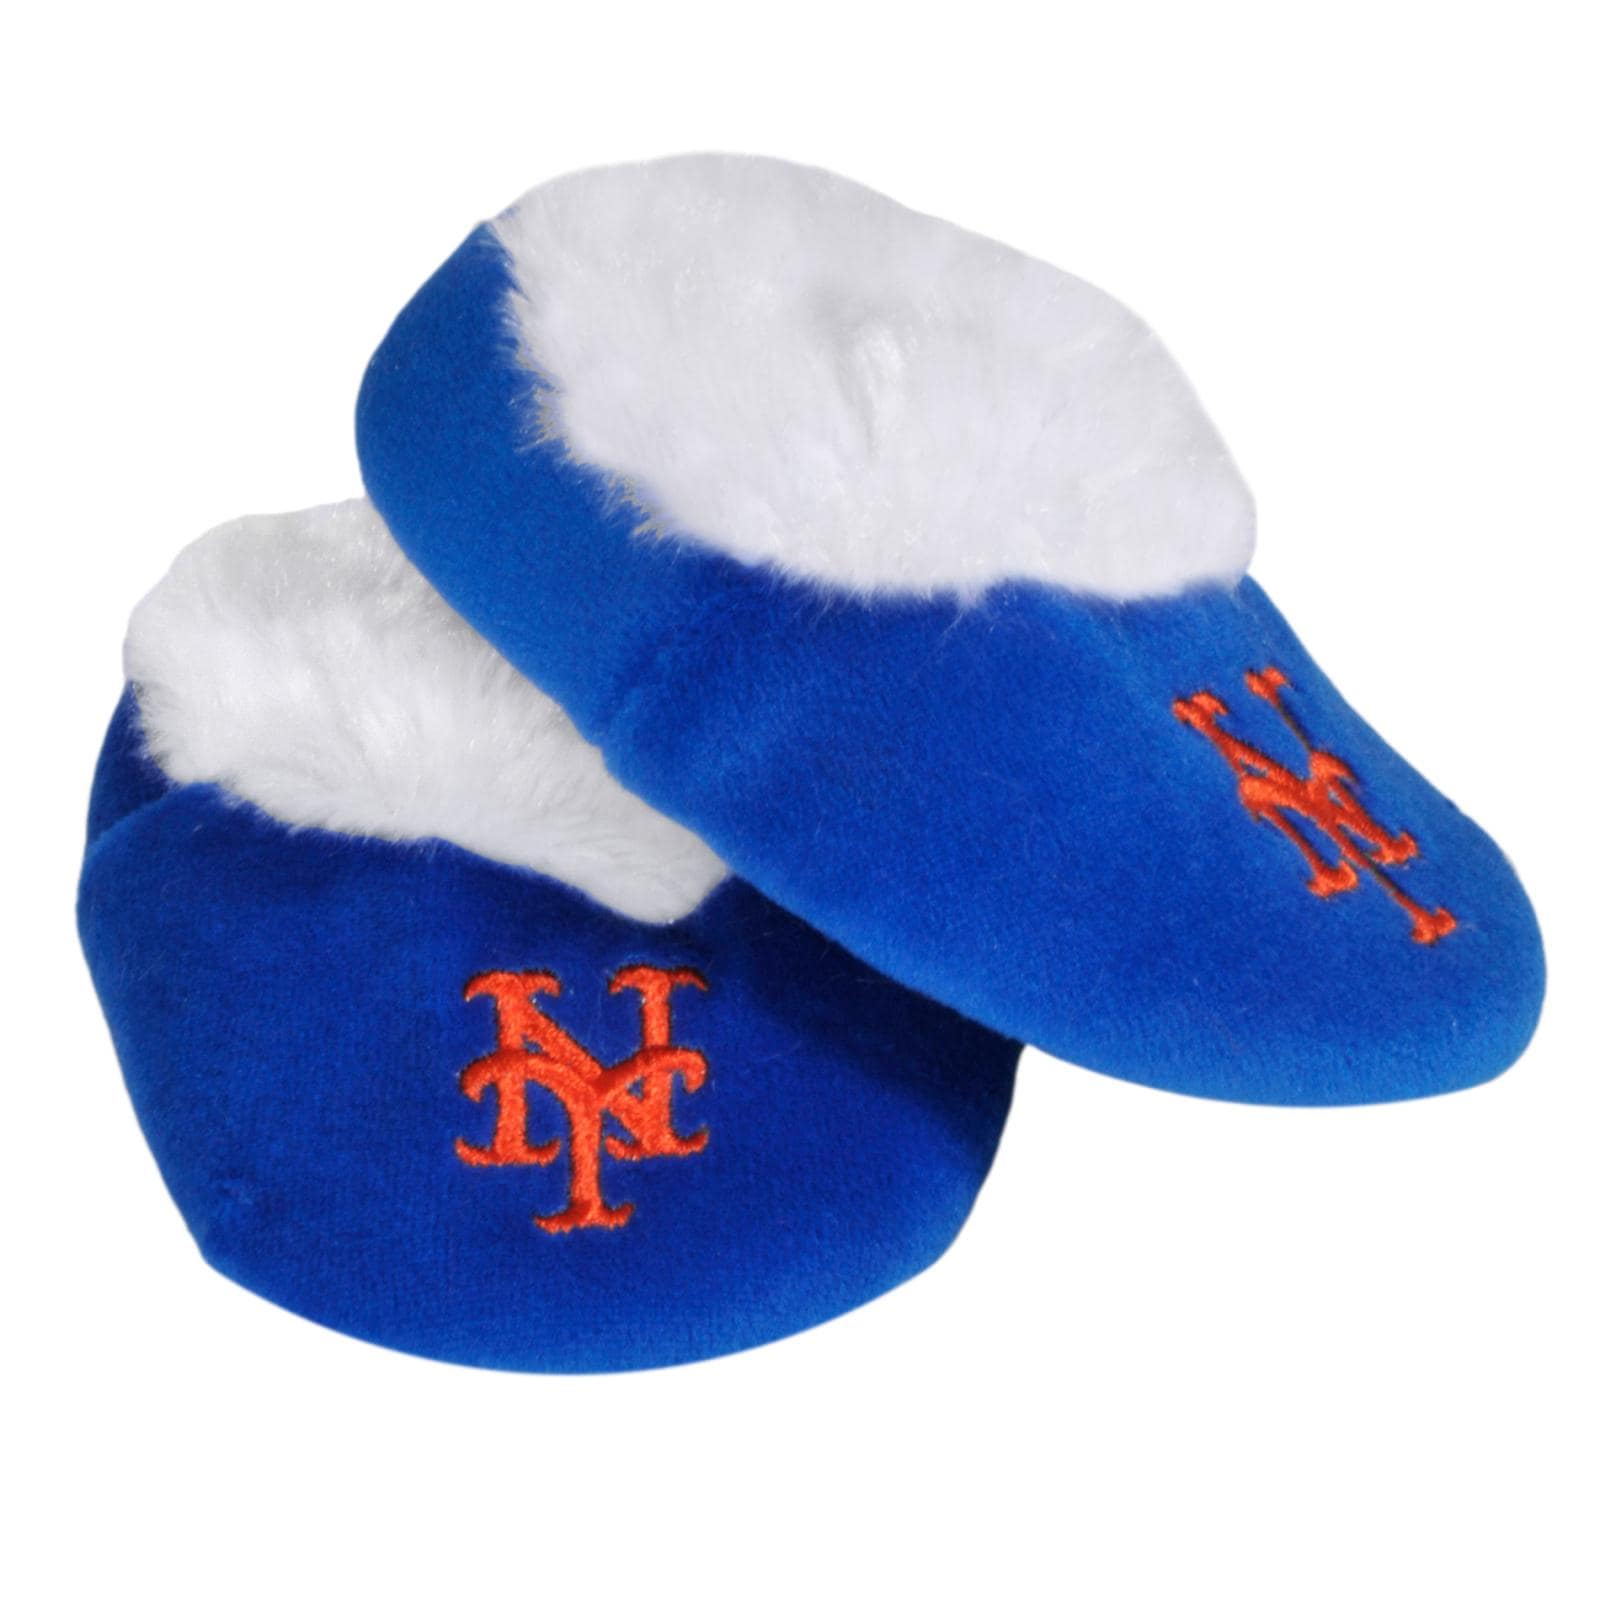 New York Mets Baby Bootie Slippers - Thumbnail 0